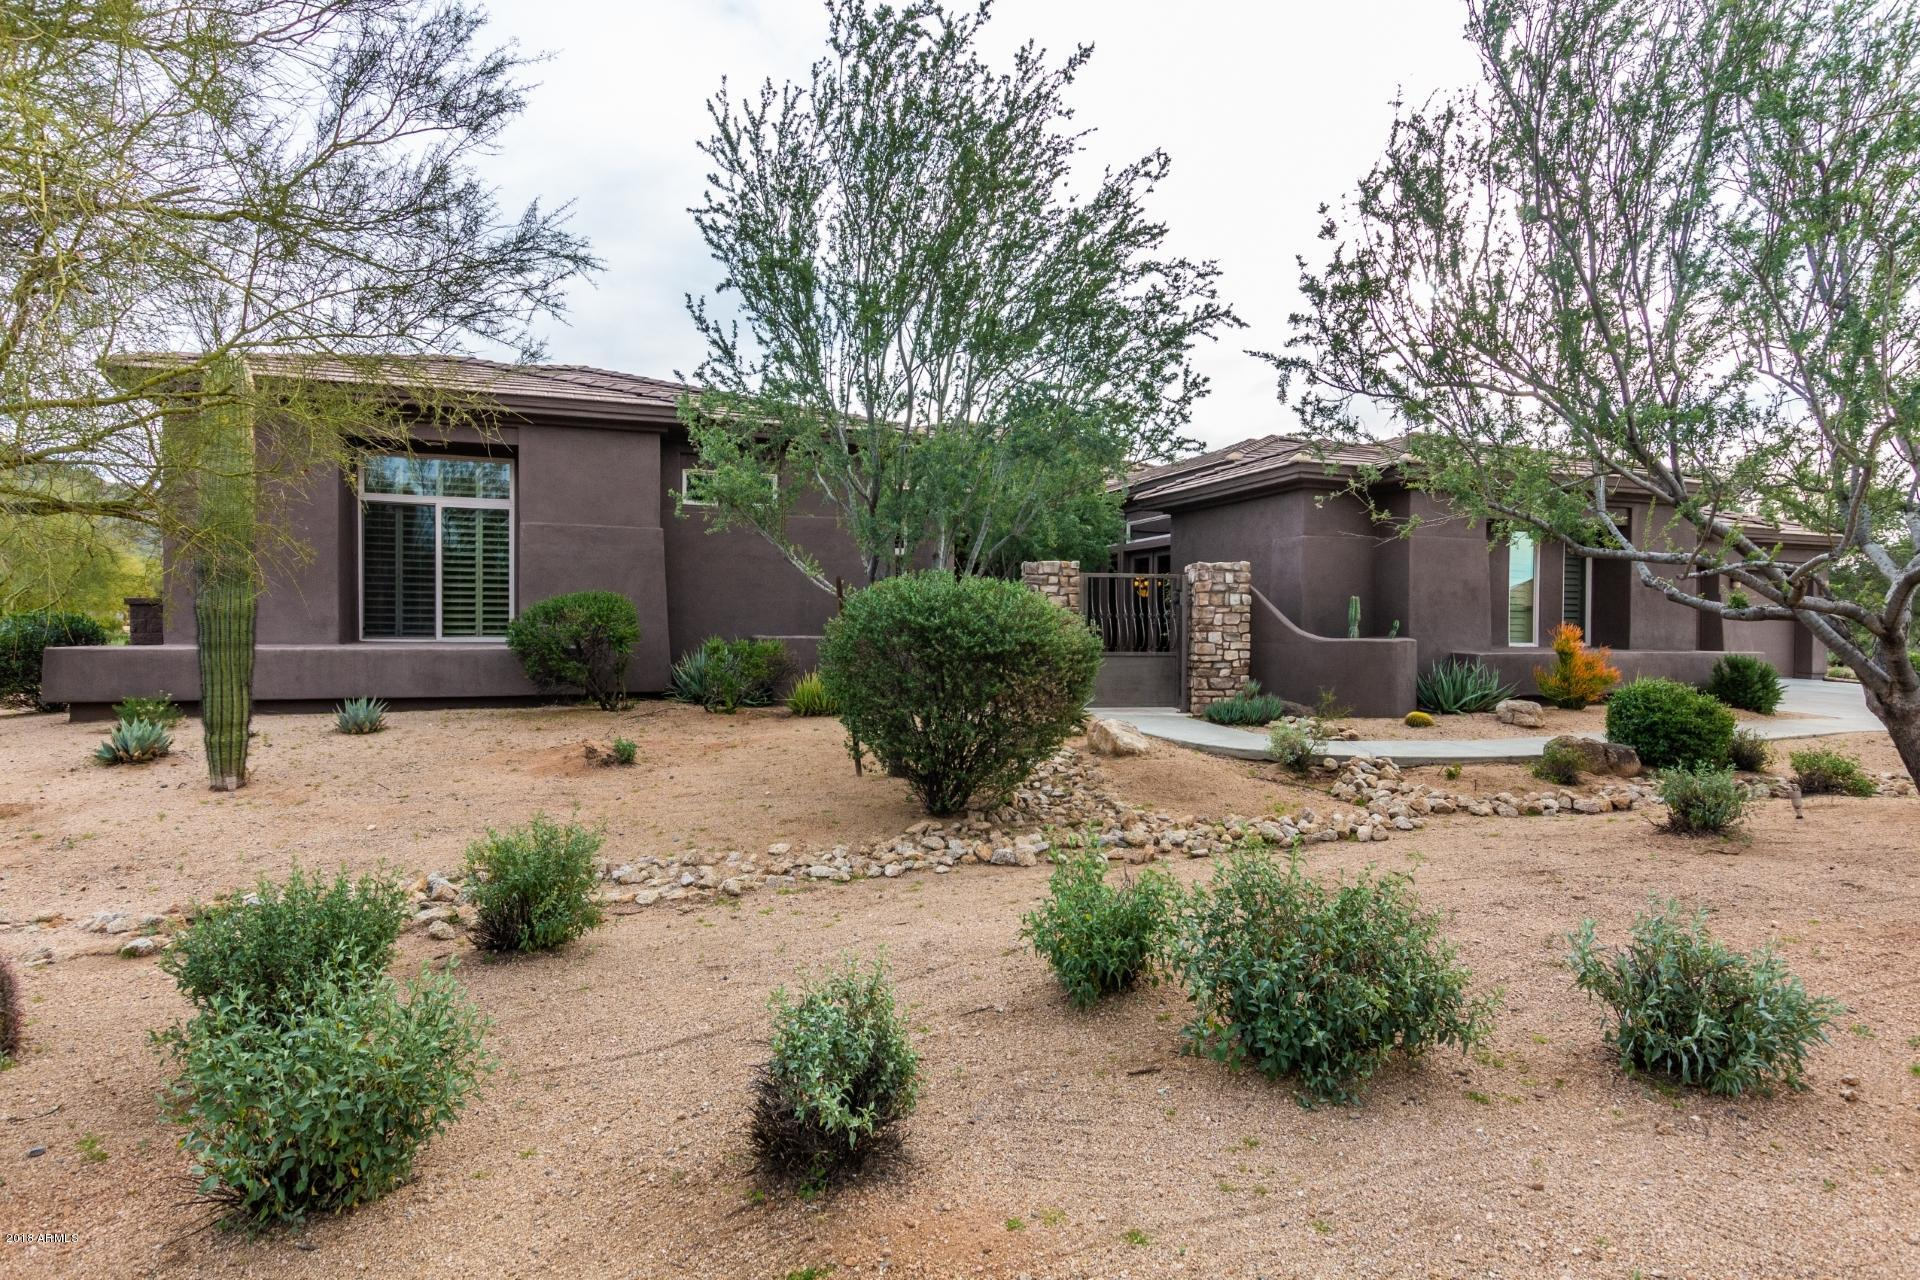 MLS 5858670 34899 N DESERT WINDS Circle, Carefree, AZ 85377 Carefree Homes for Rent